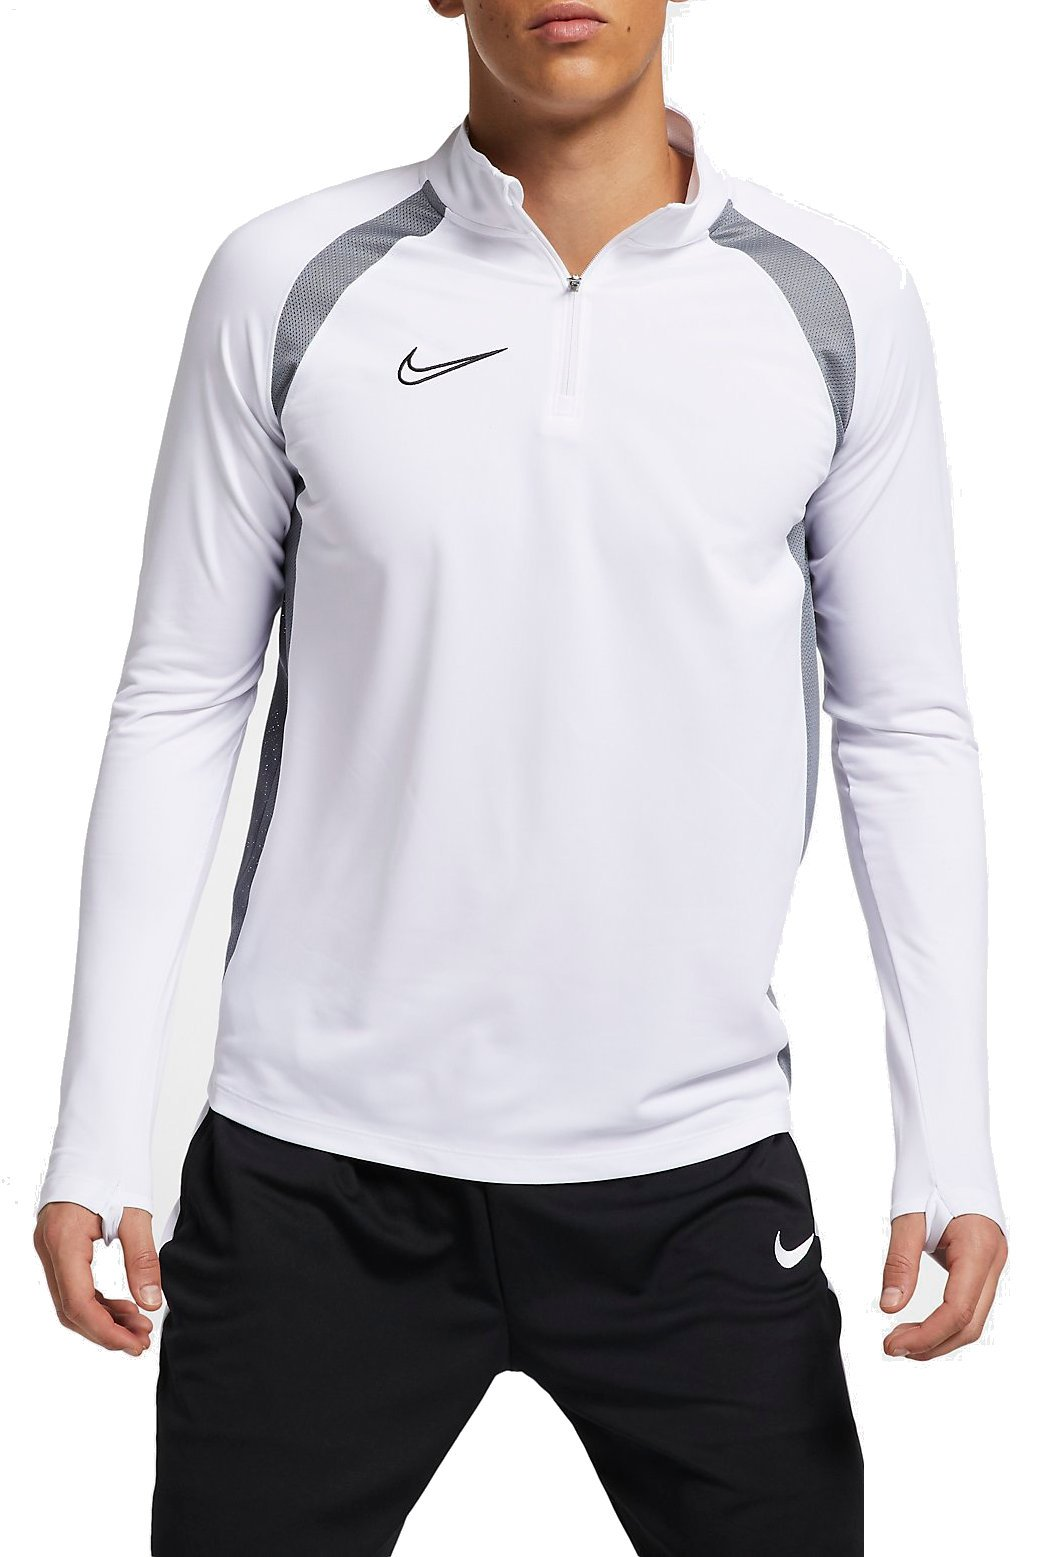 Hanorac Nike M NK DRY ACDMY DRIL TOP SMR